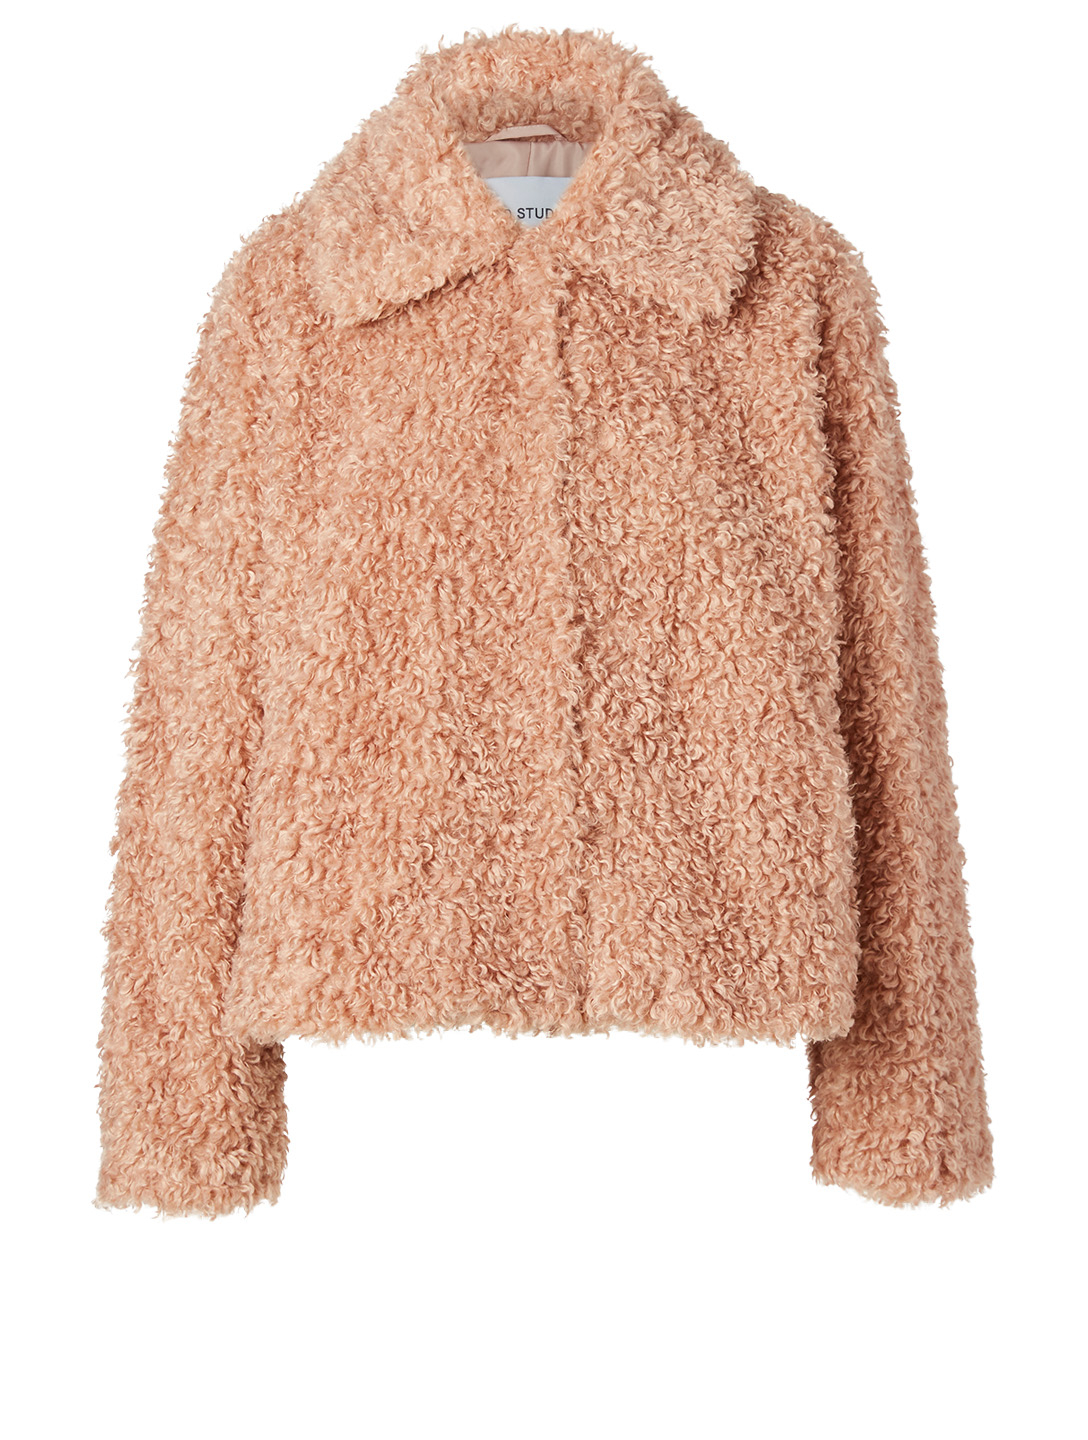 STAND STUDIO Marcella Faux Fur Shaved Jacket Women's Pink